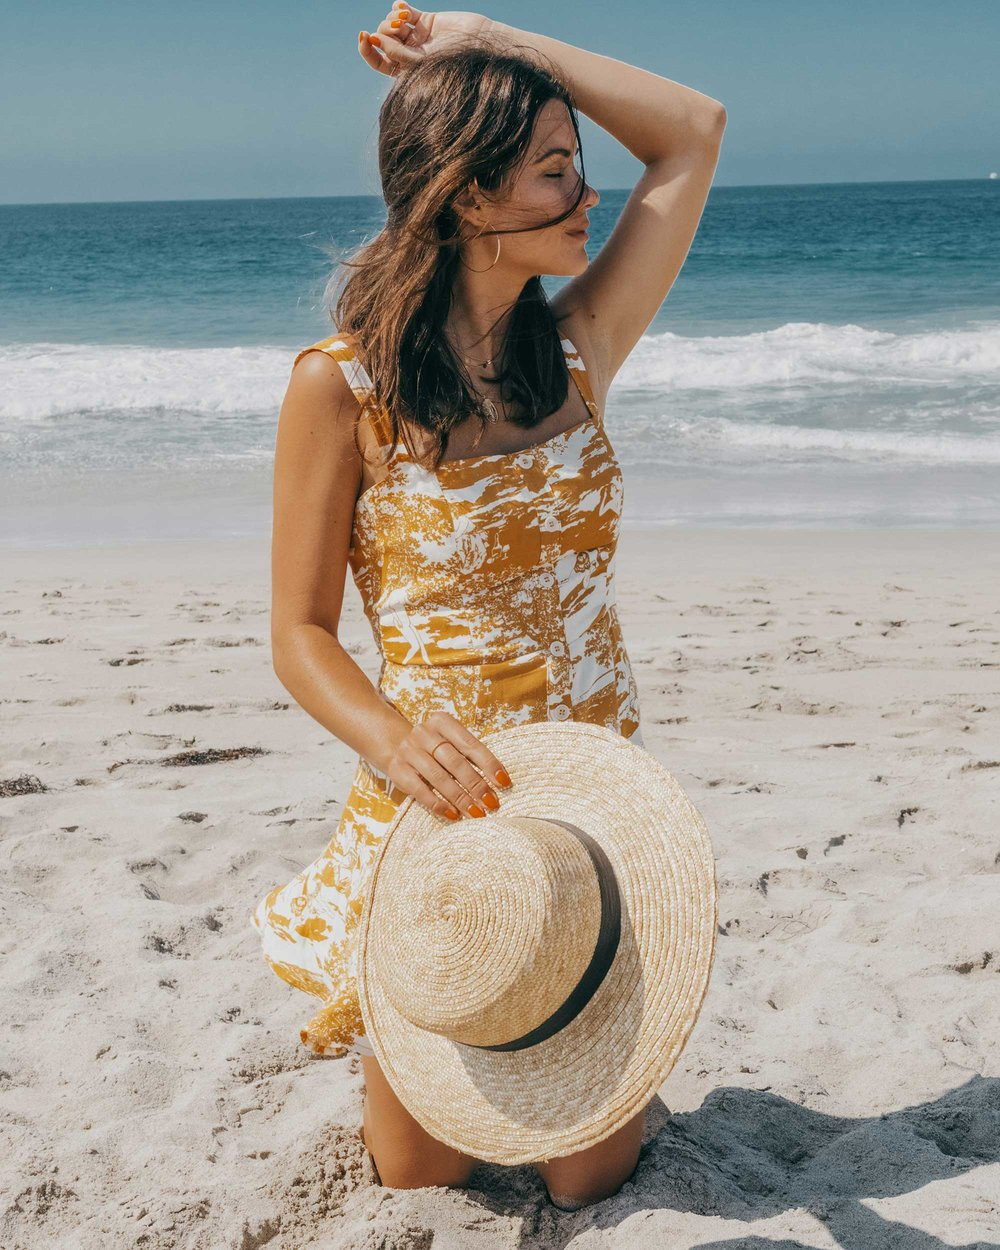 Reformation yellow mini dress with center front buttons Newport Beach California outfit8.jpg